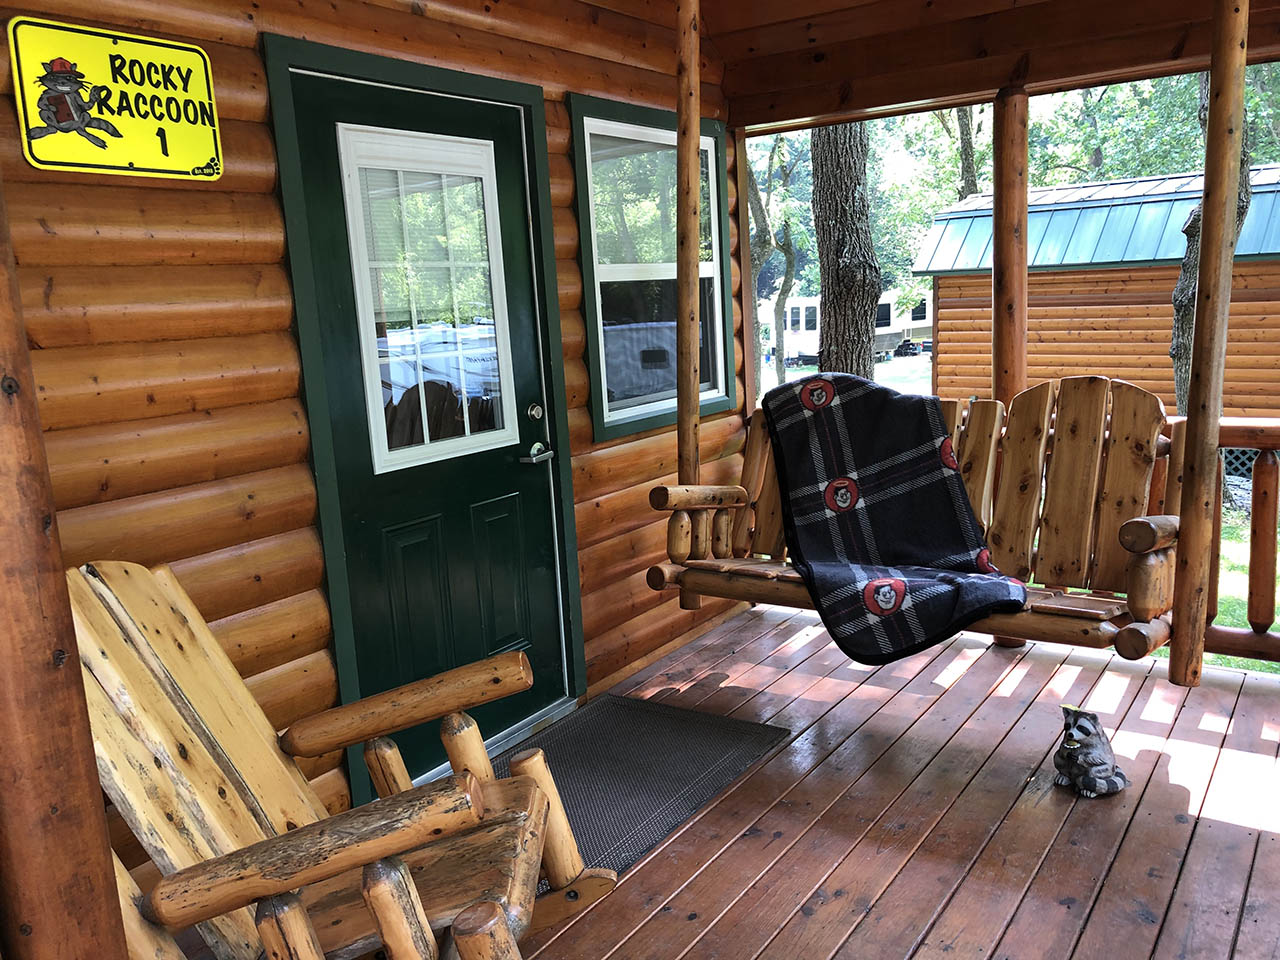 porch swing and chair